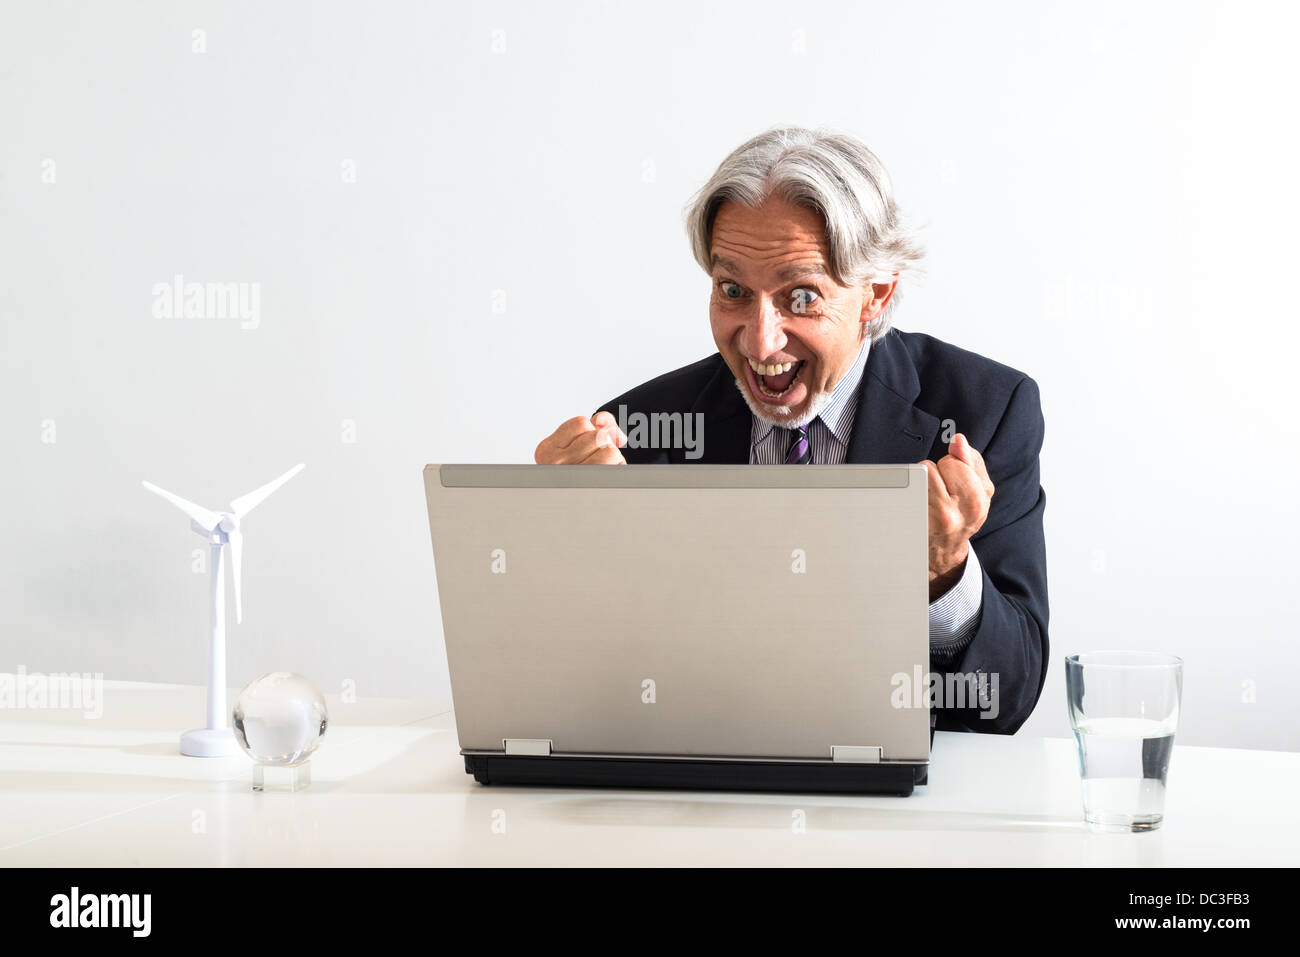 Successful Businessman Cheering Behind His Laptop In A